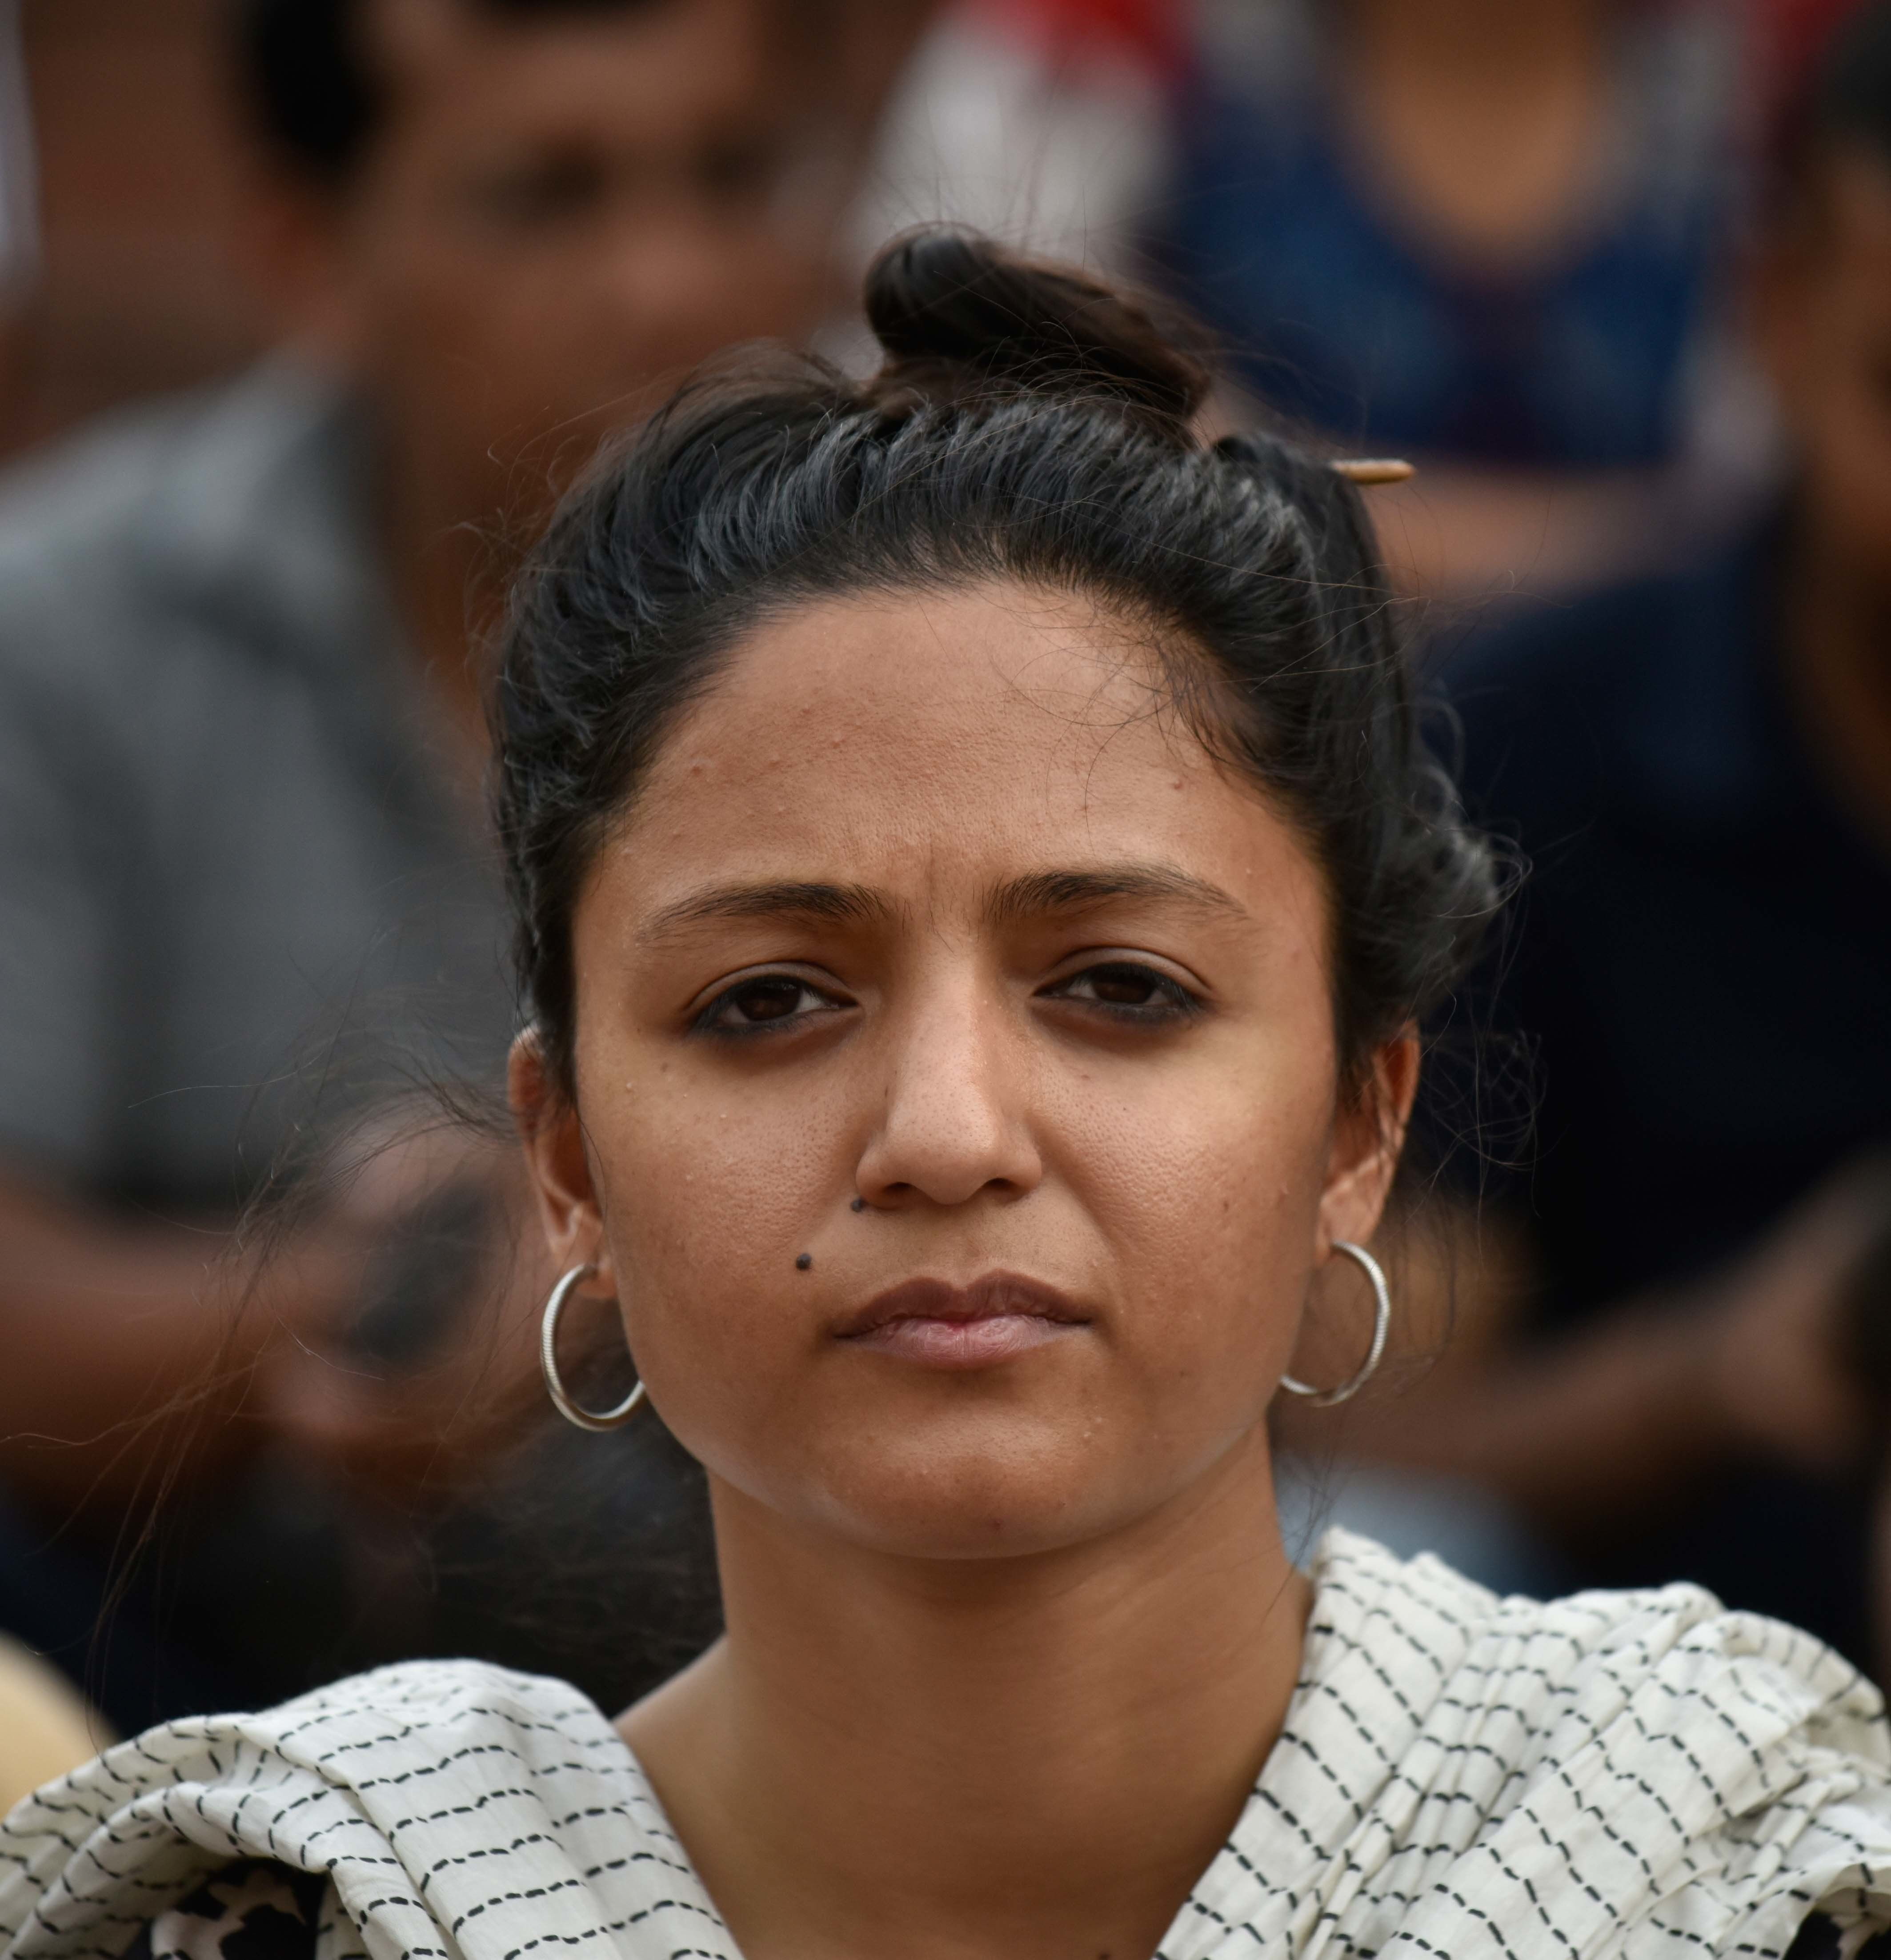 JNU Scholar Shehla Rashid Booked By Uttarakhand Police For 'Spreading Rumours' On